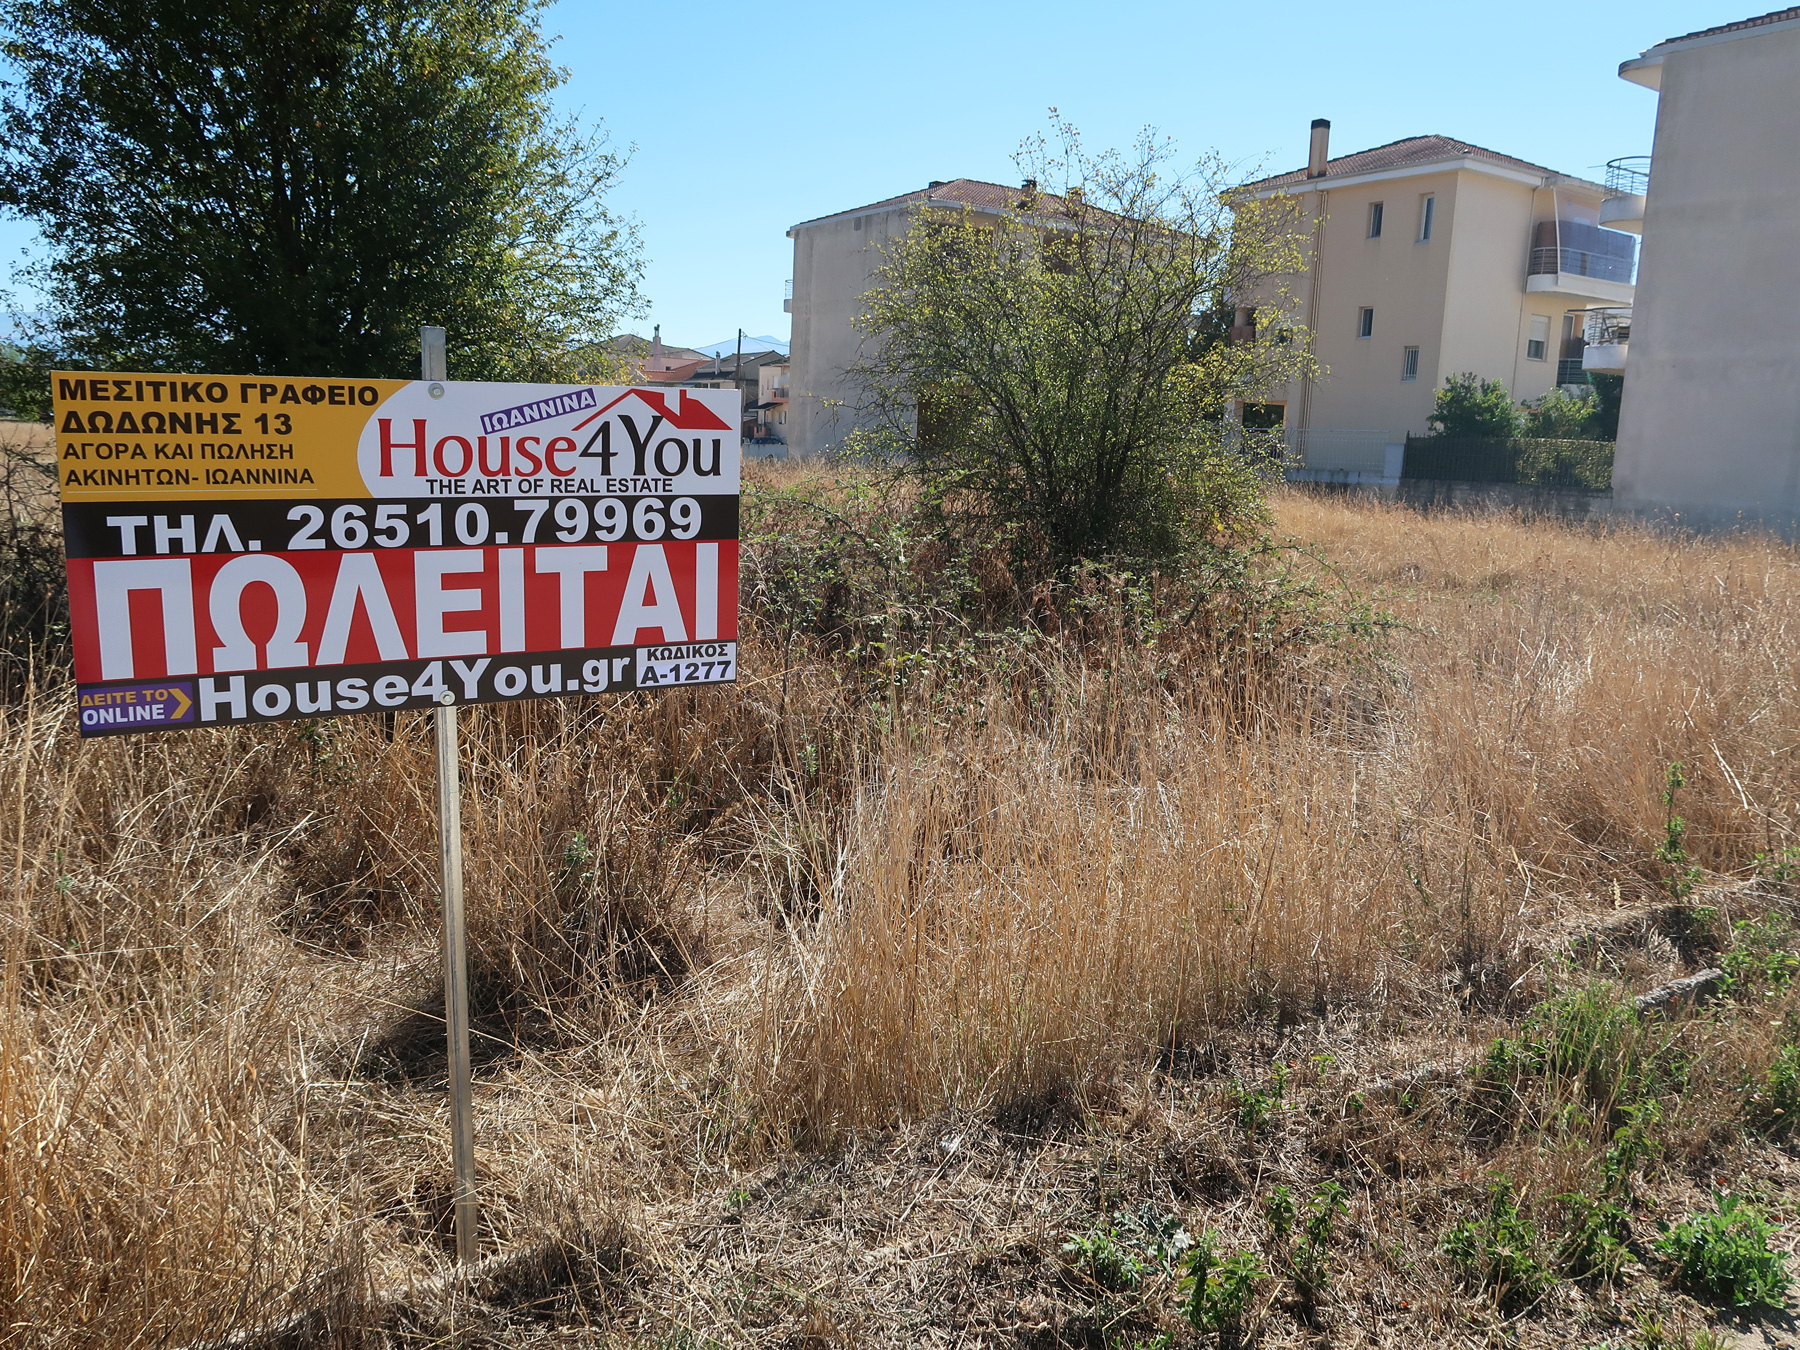 For sale a plot of 937 sq.m. with SD. 0.5 in K. Neochoropoulos on Perivleptou Street